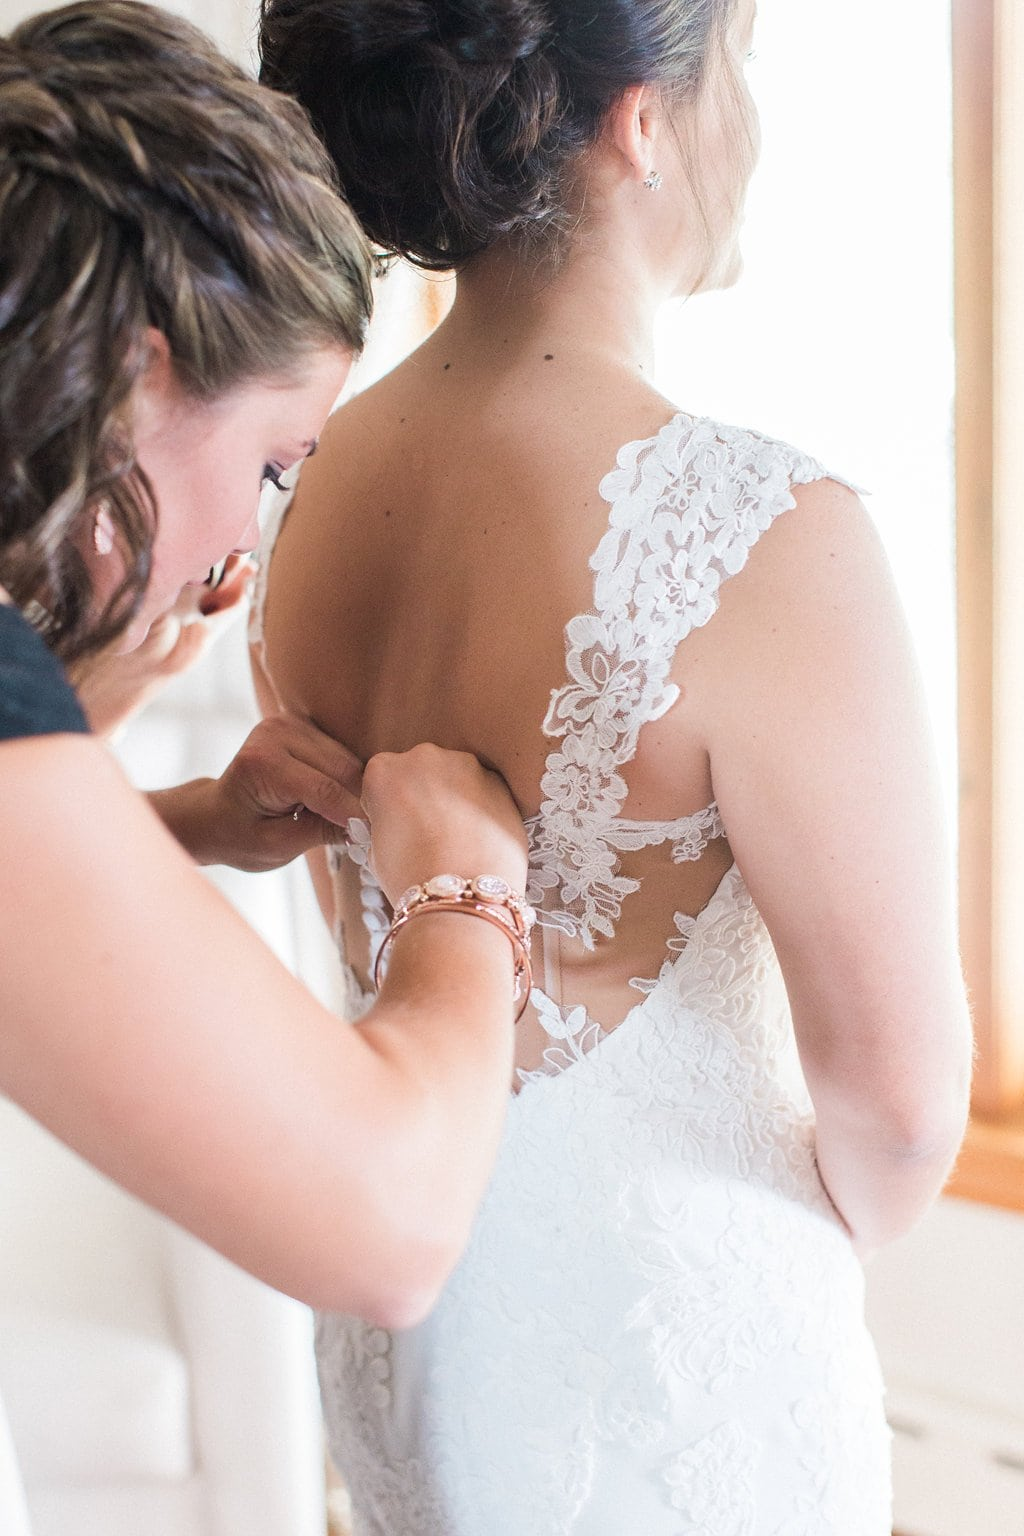 Bride's sister helping her into her wedding dress